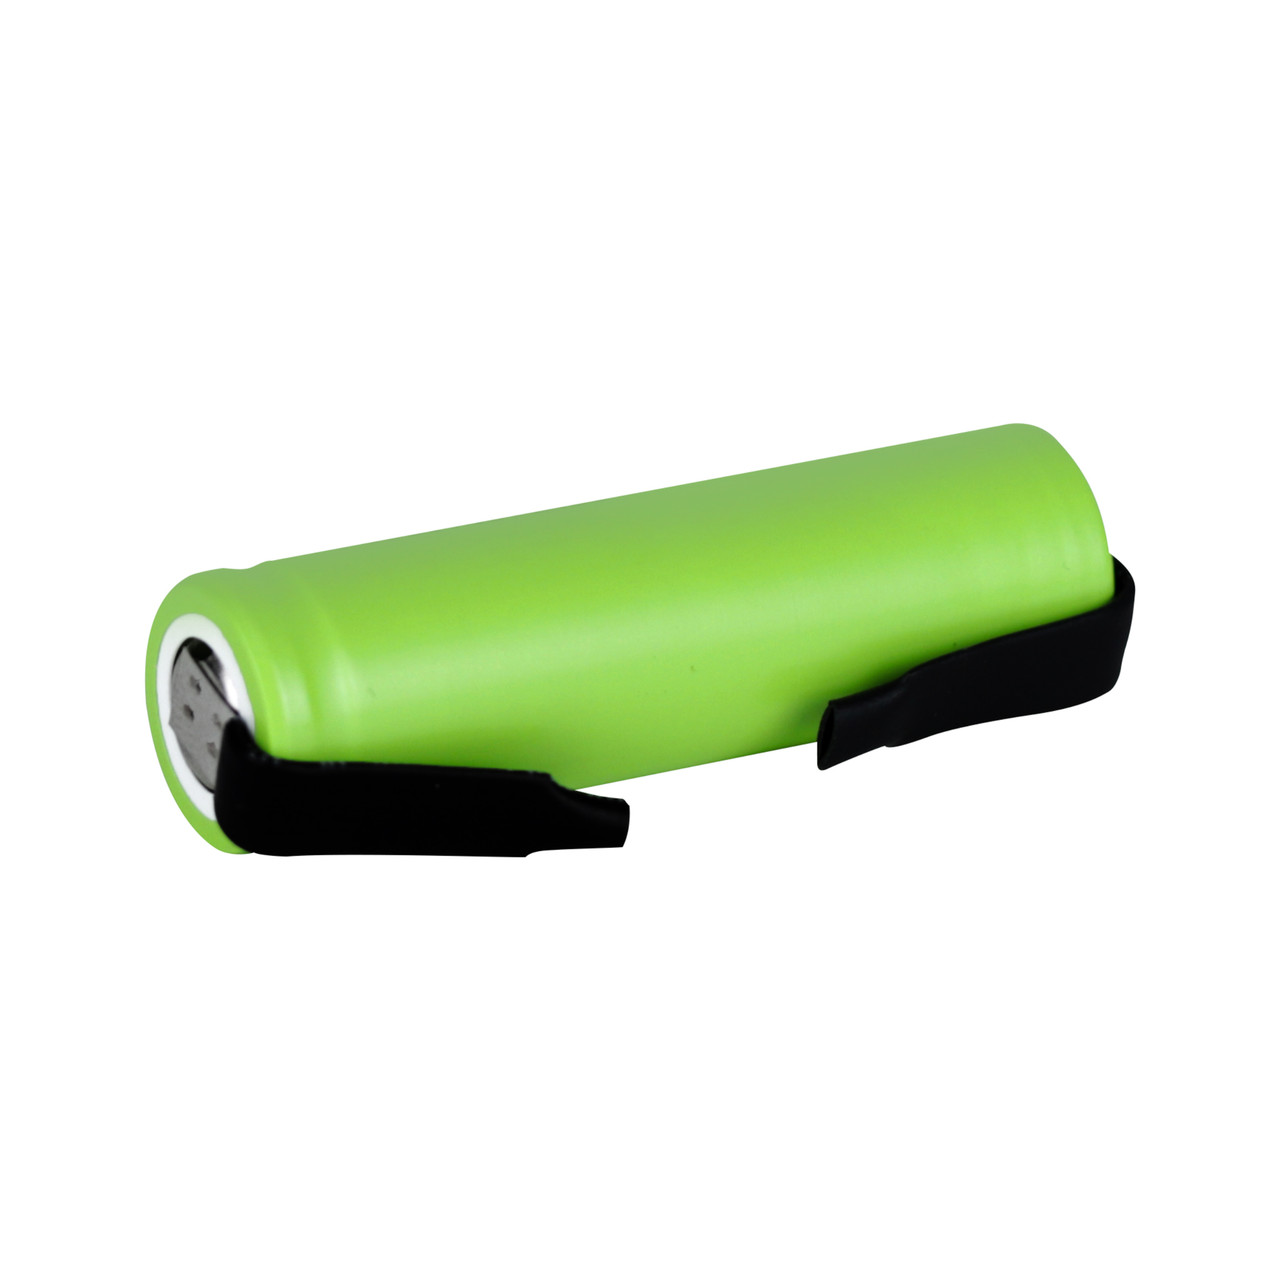 Tenergy Li-ion 14500 Cylindrical 3.6V 750mAh Flat Top Rechargeable Battery - UL Listed